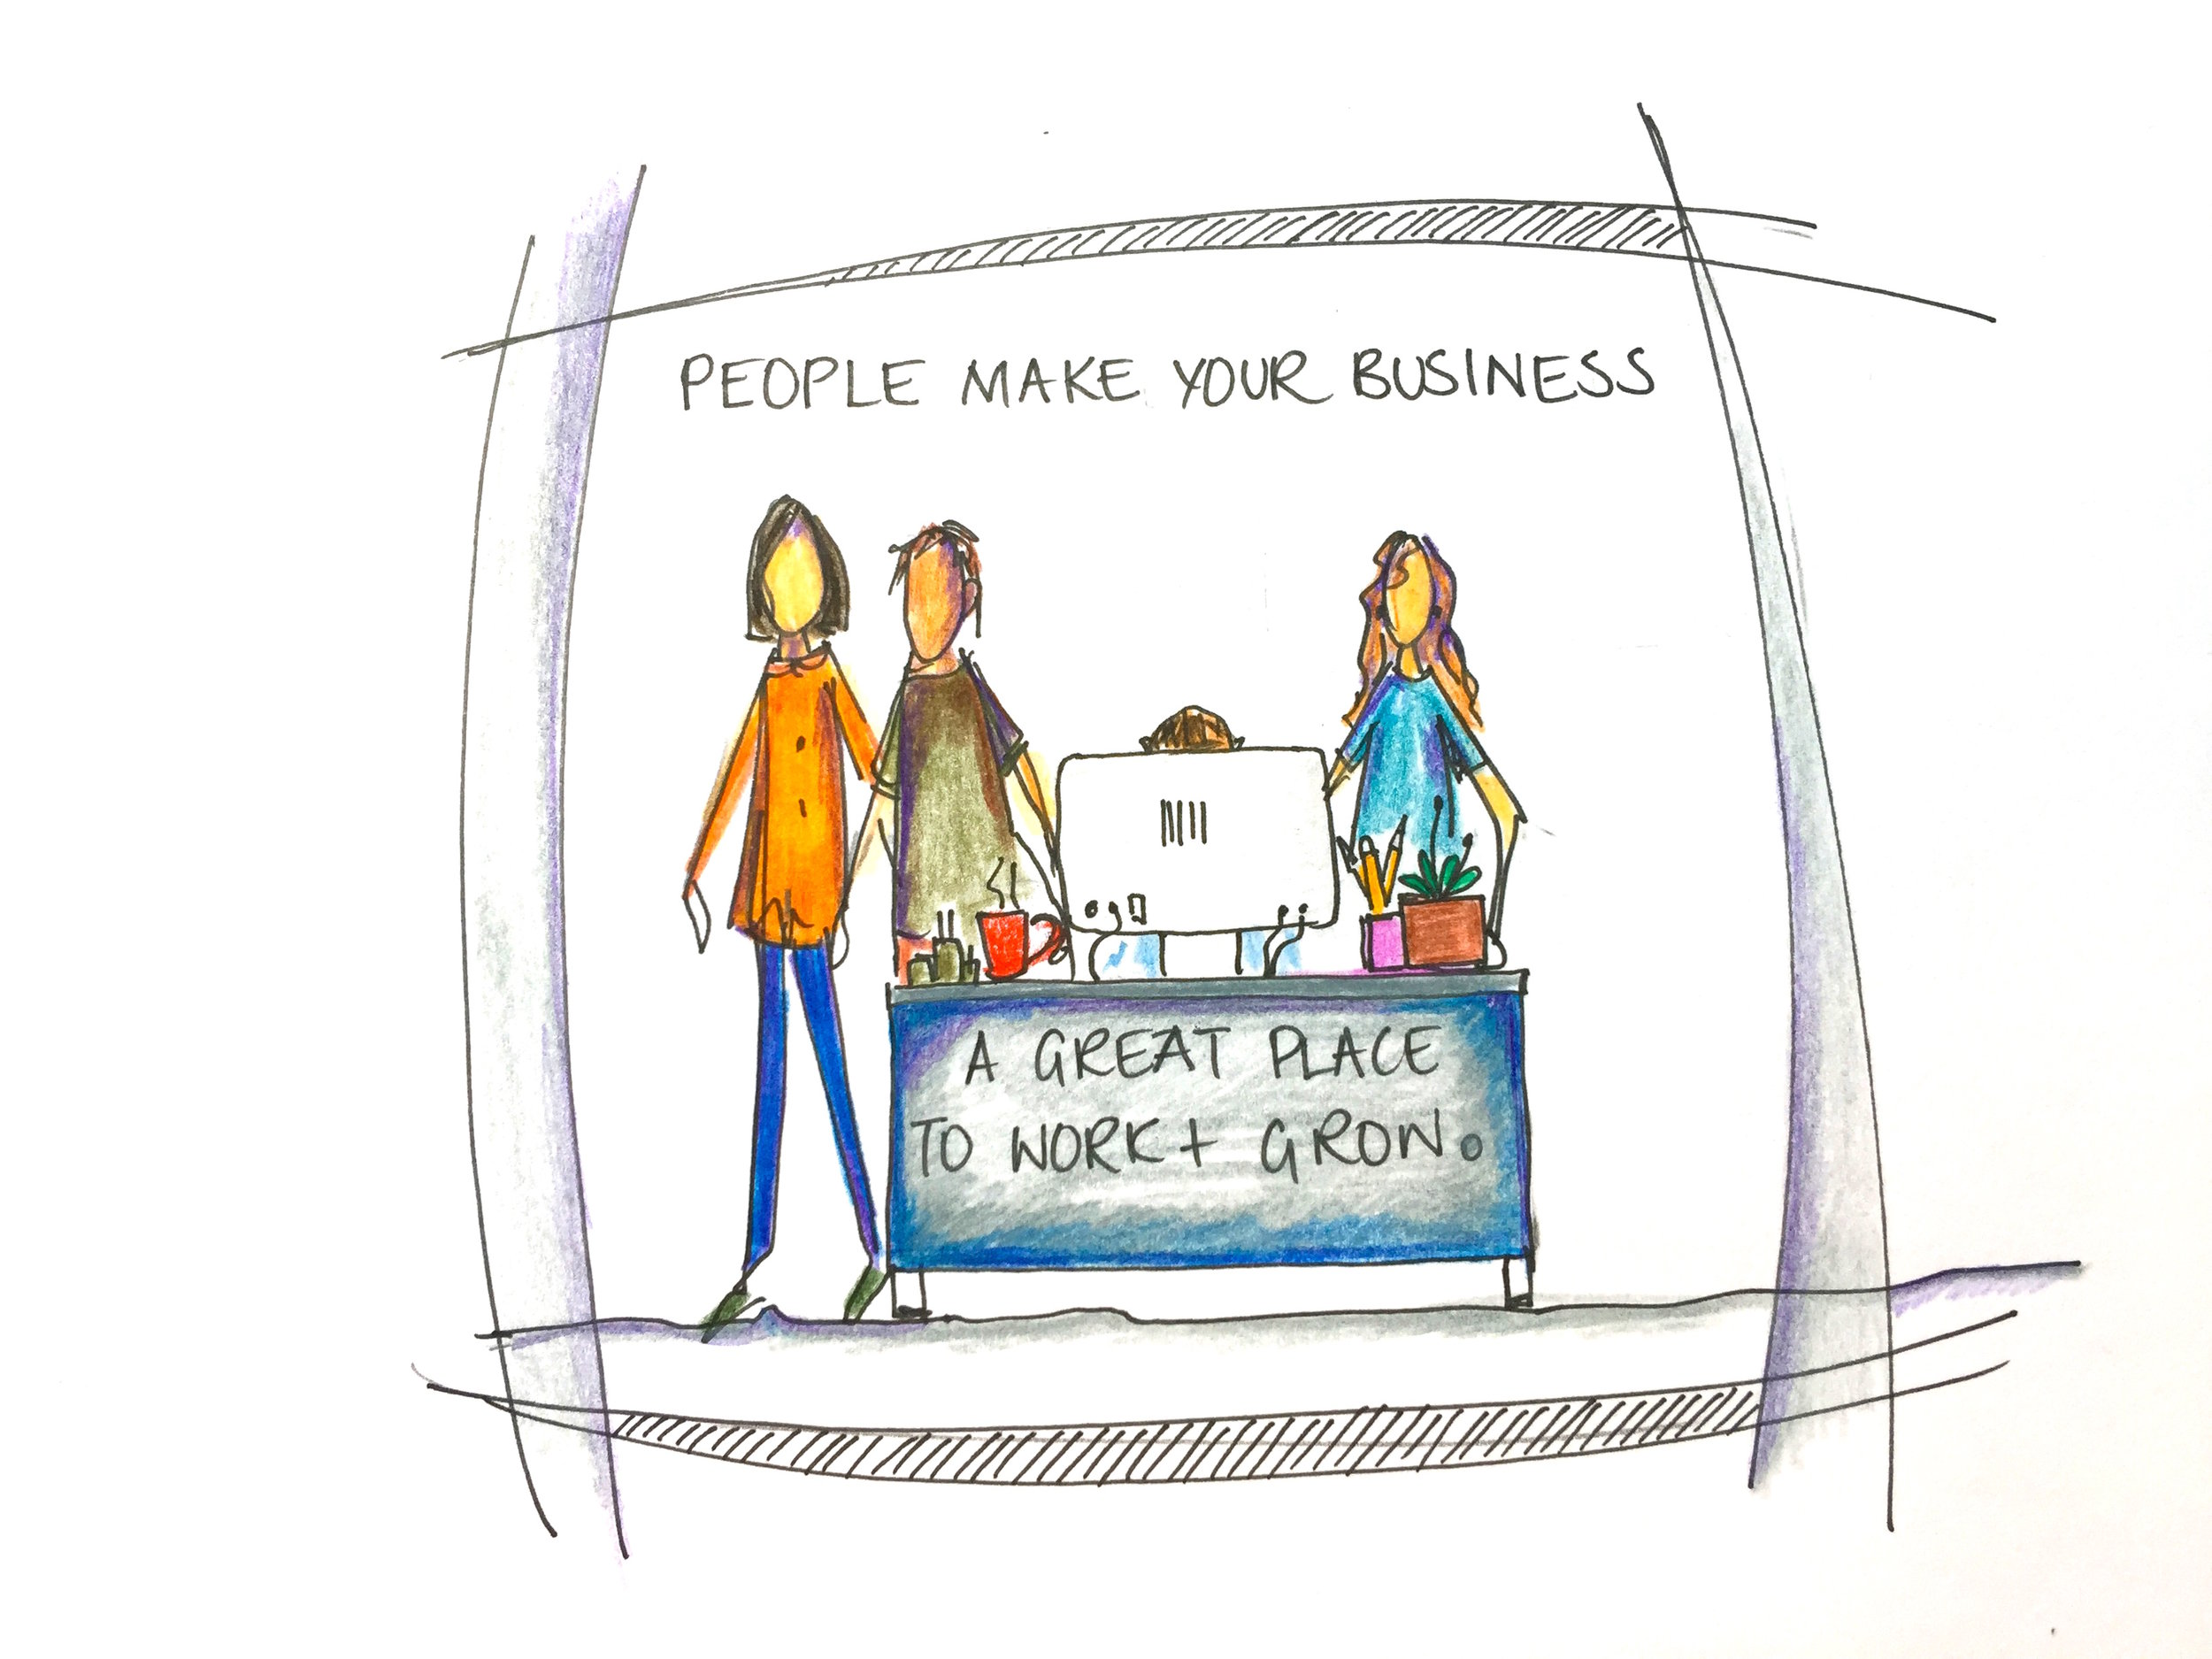 Make people your business